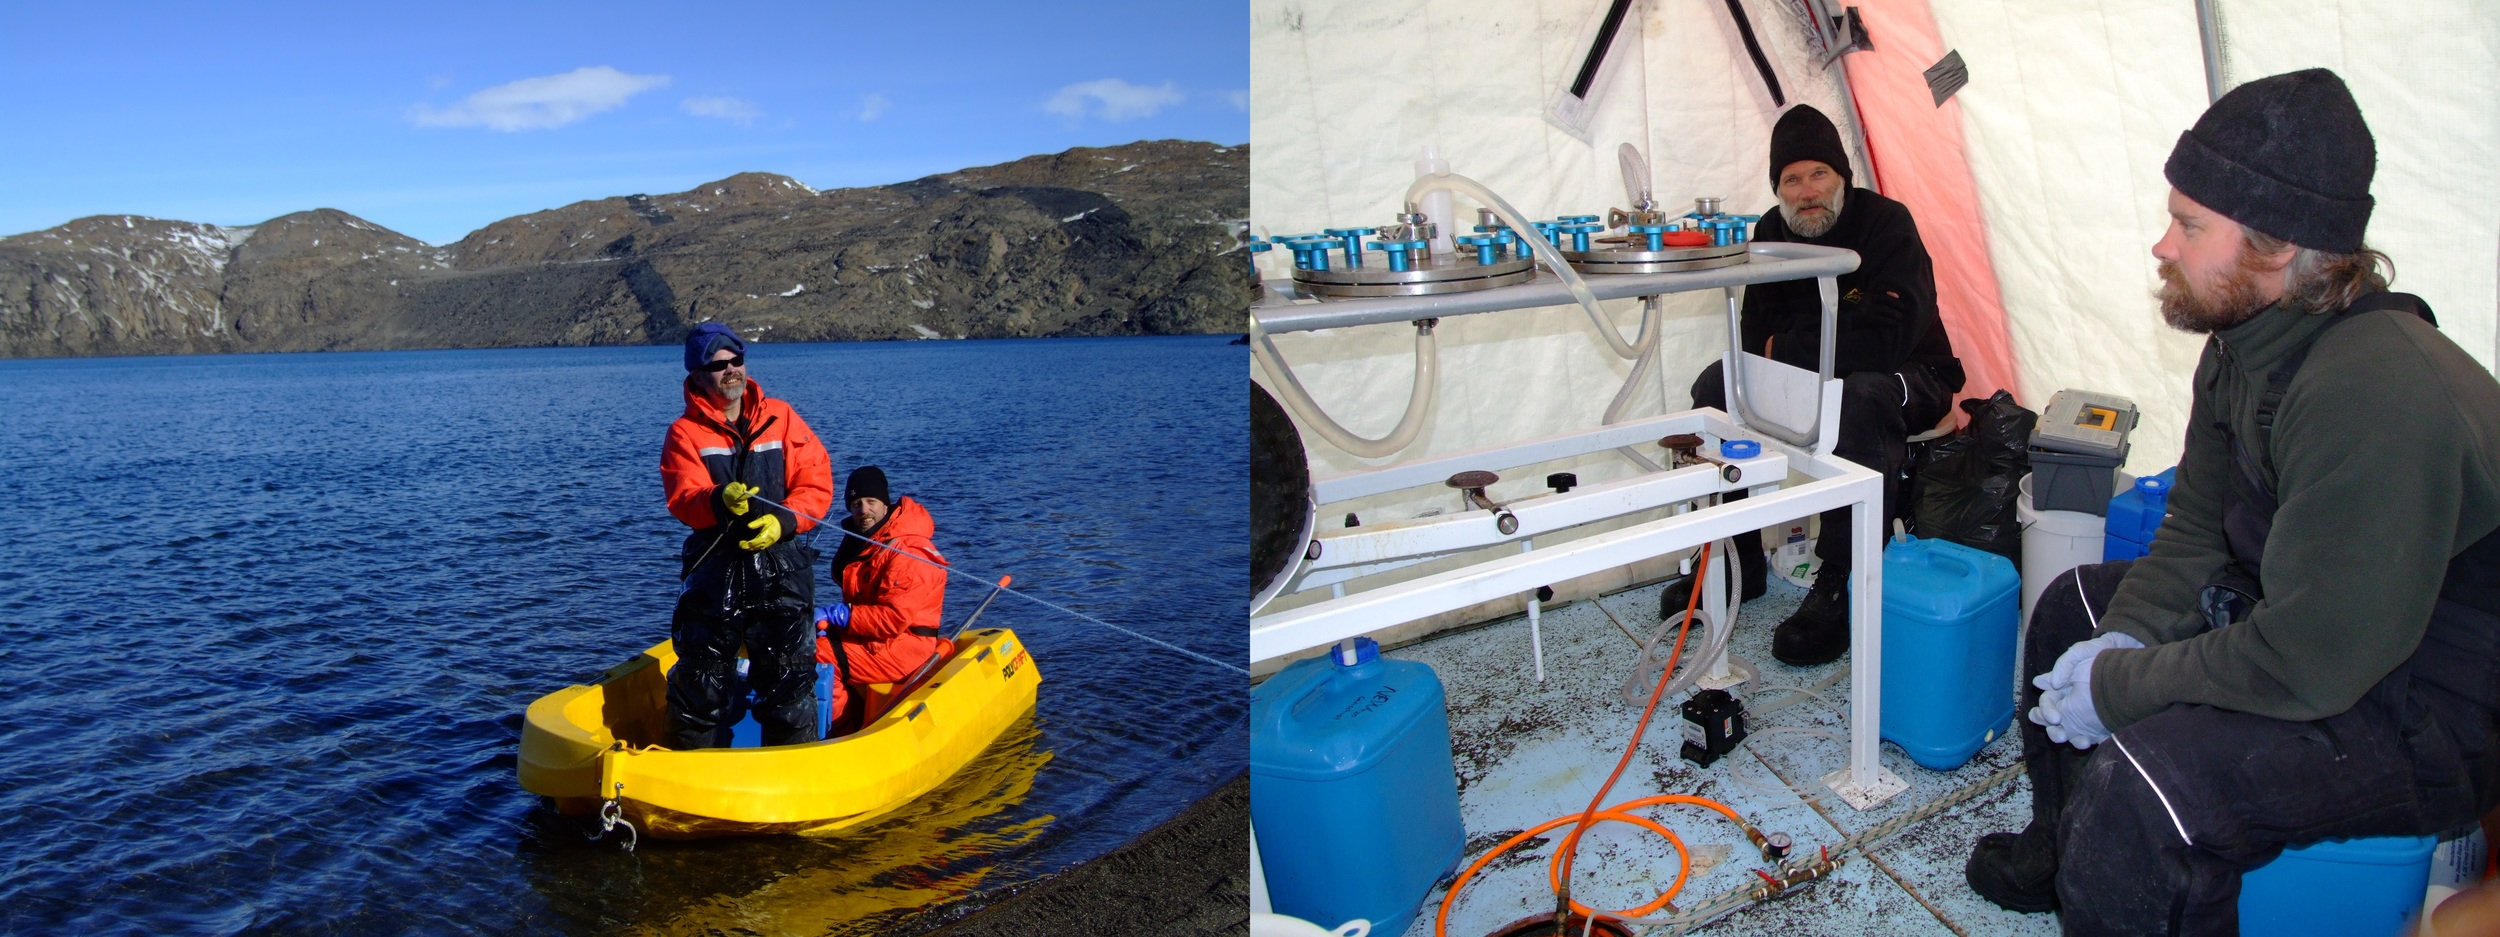 After taking samples from Deep Lake (left), the water undergoes filtration (right) prior to metagenomic analysis back in Sydney.   Photos from 2008 expedition.  Ricardo Cavicchioli (used with permission)